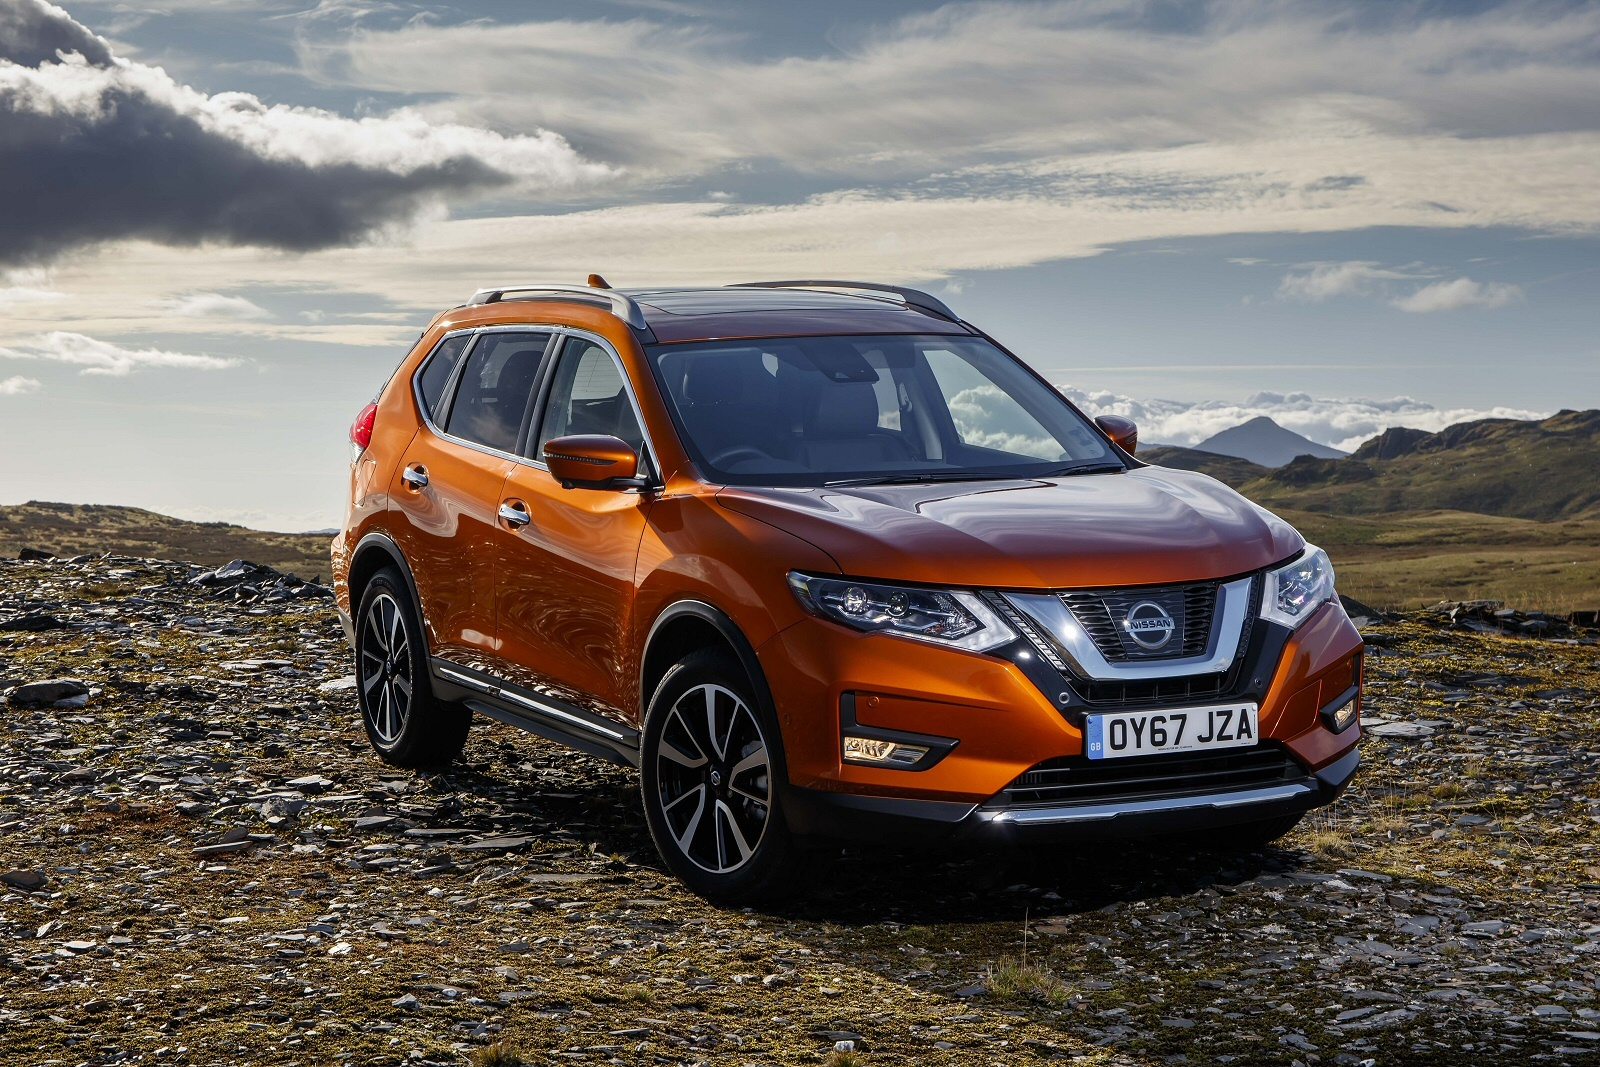 WORLDS TOP SUV HAS ROBUST NEW EXTERIOR DESIGN. Nissan X Trail